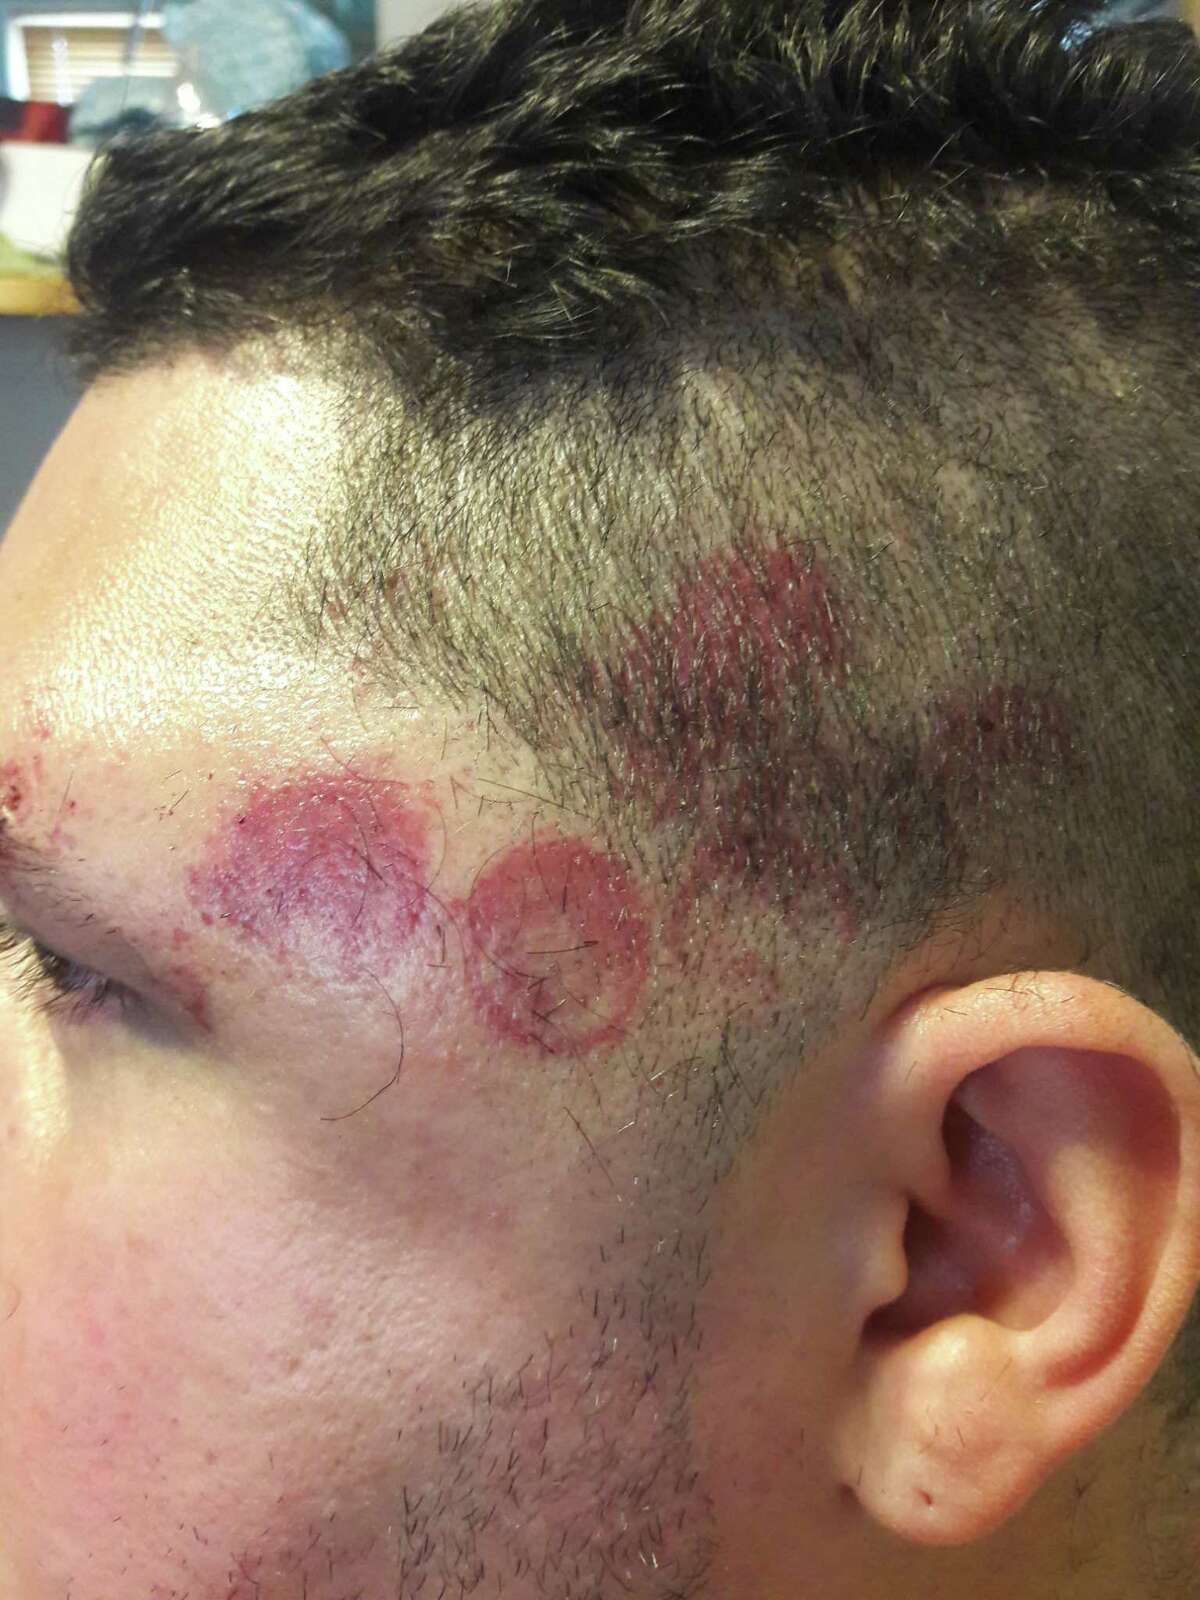 Carmelo Mendez said police made these marks on his head when they broke up a party in 2017.